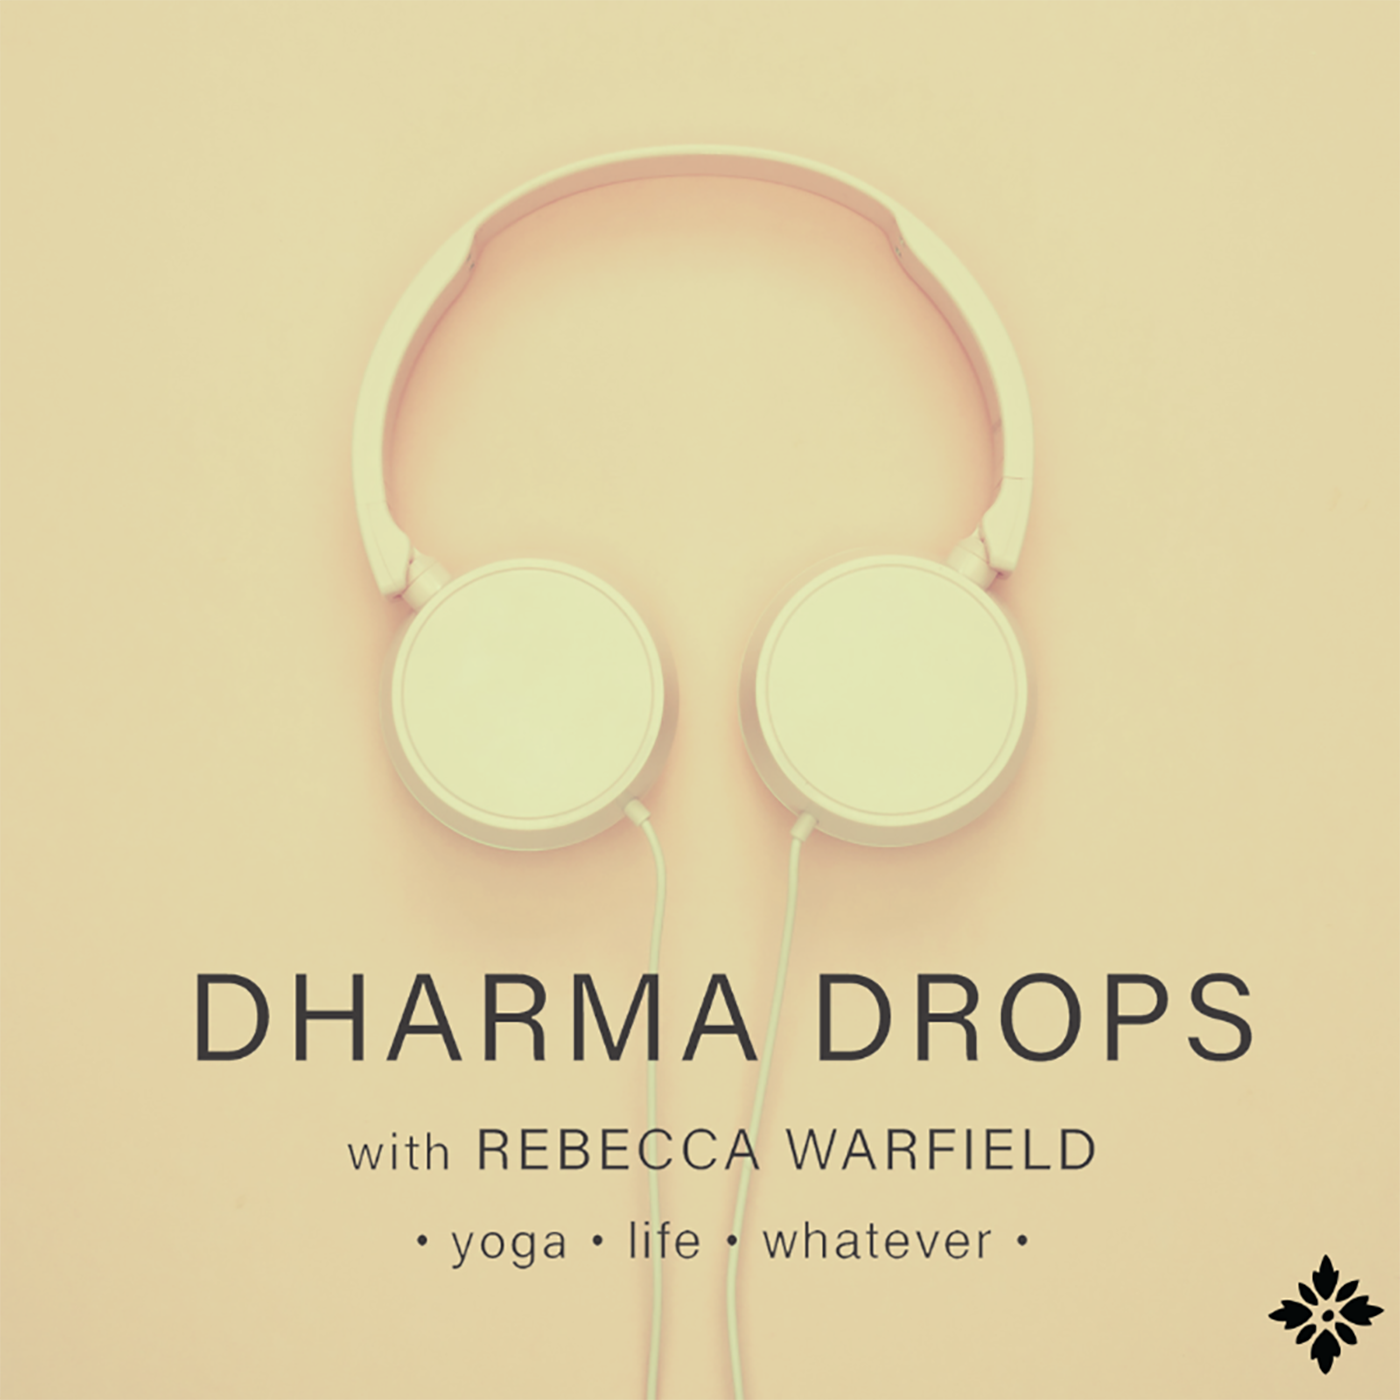 Dharma Drops: Yoga, Life, Whatever